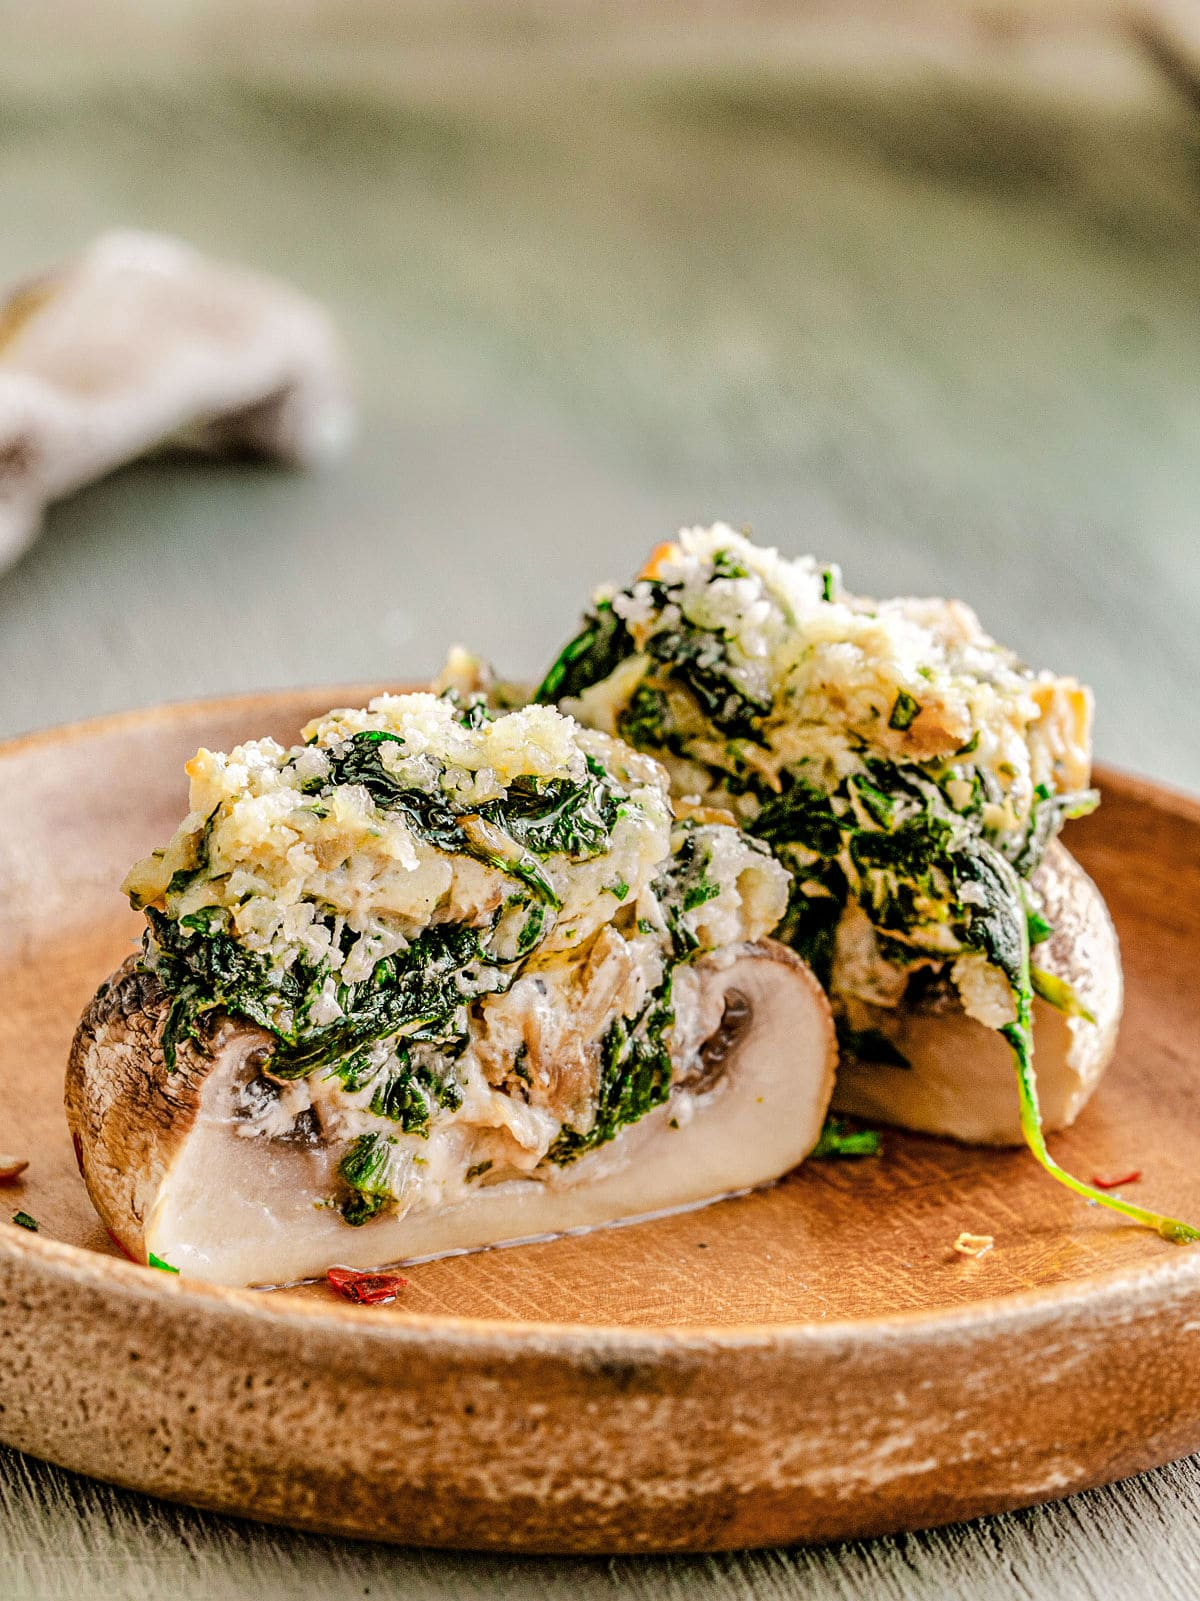 a stuffed mushroom split in half on a brown plate so you can see the creamy spinach filling.